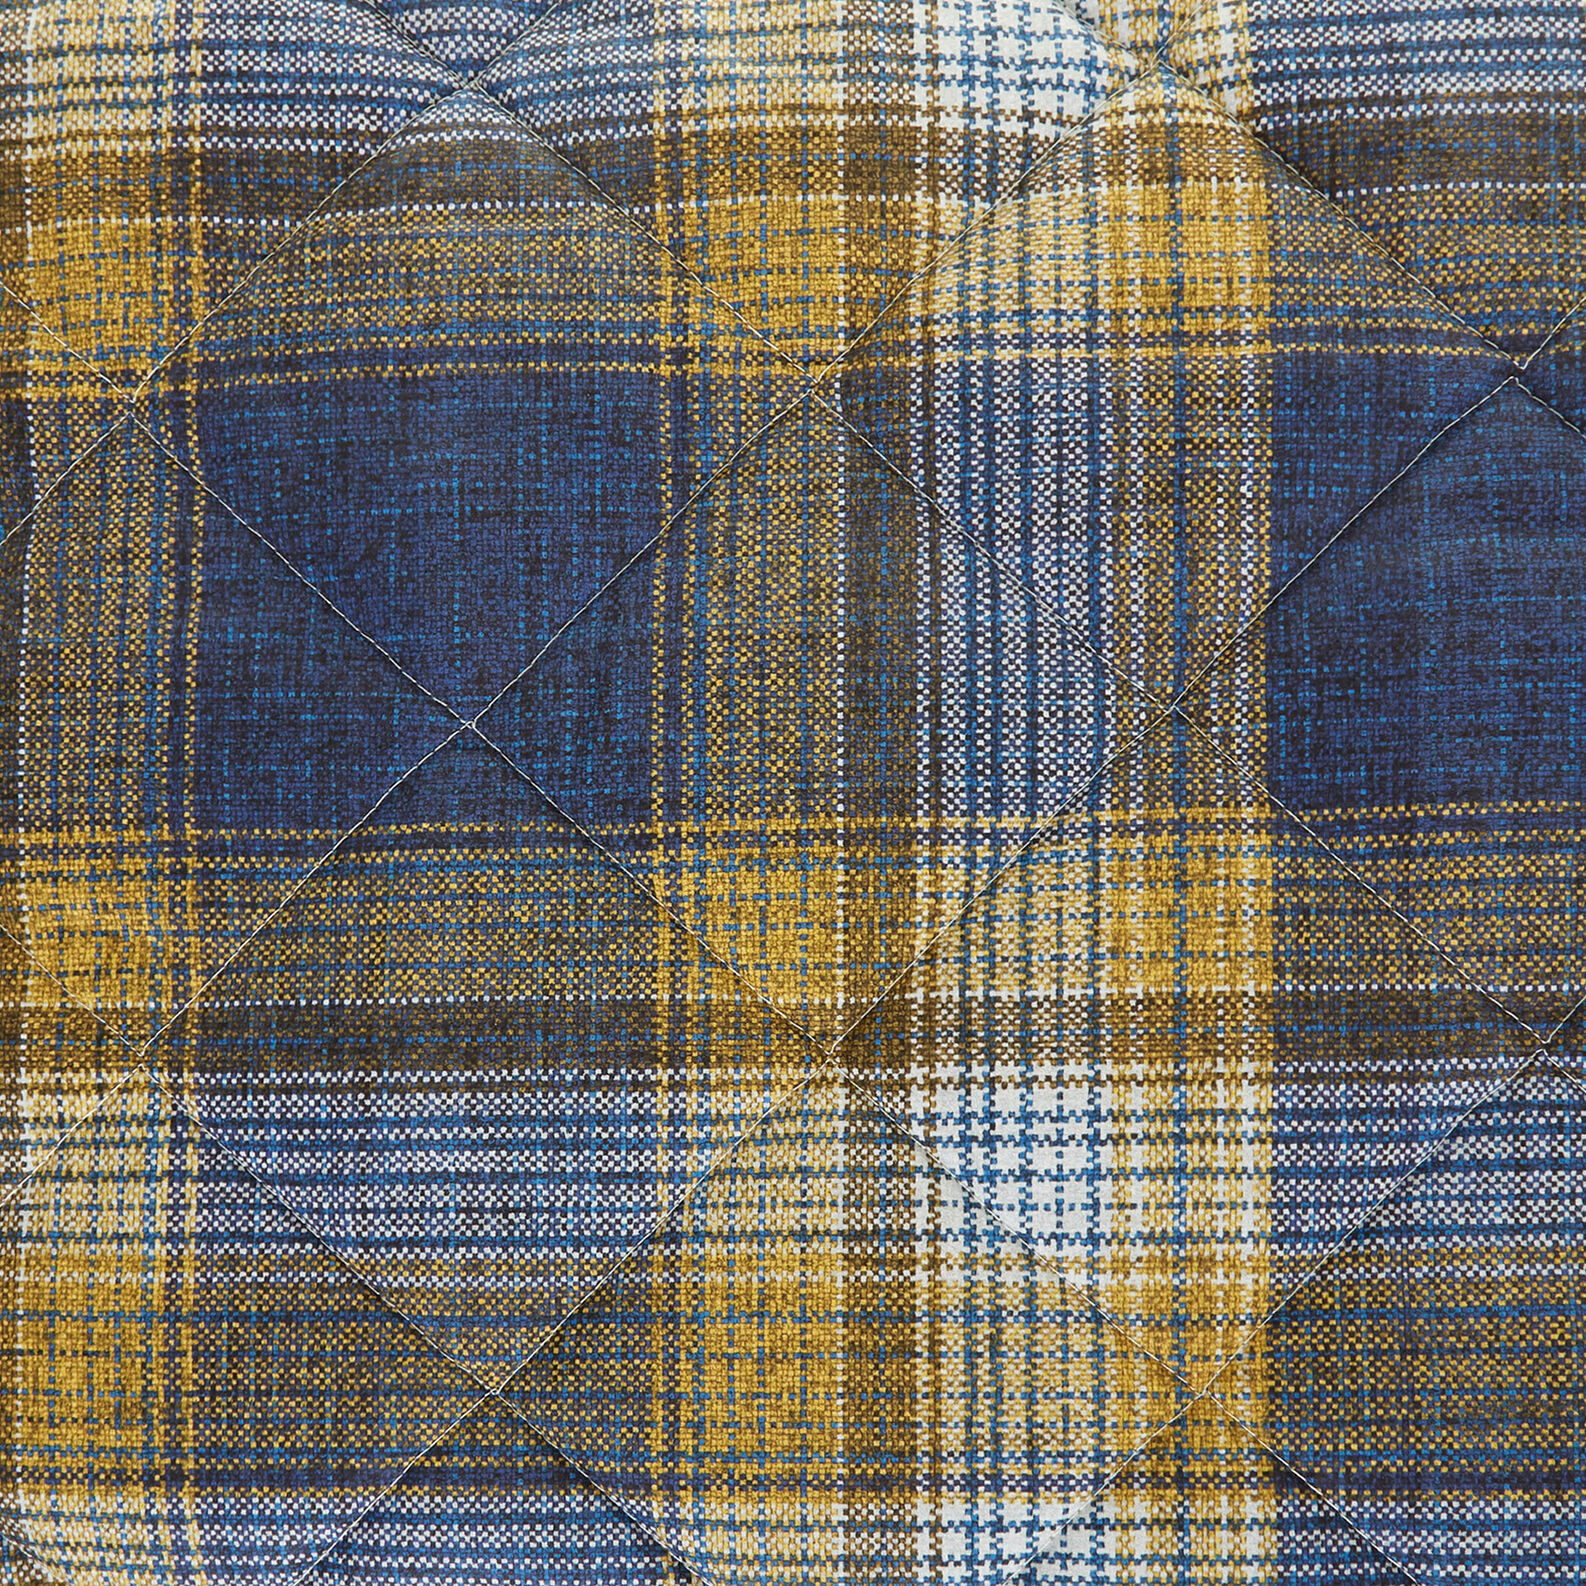 Quilt in 100% cotton with tartan print